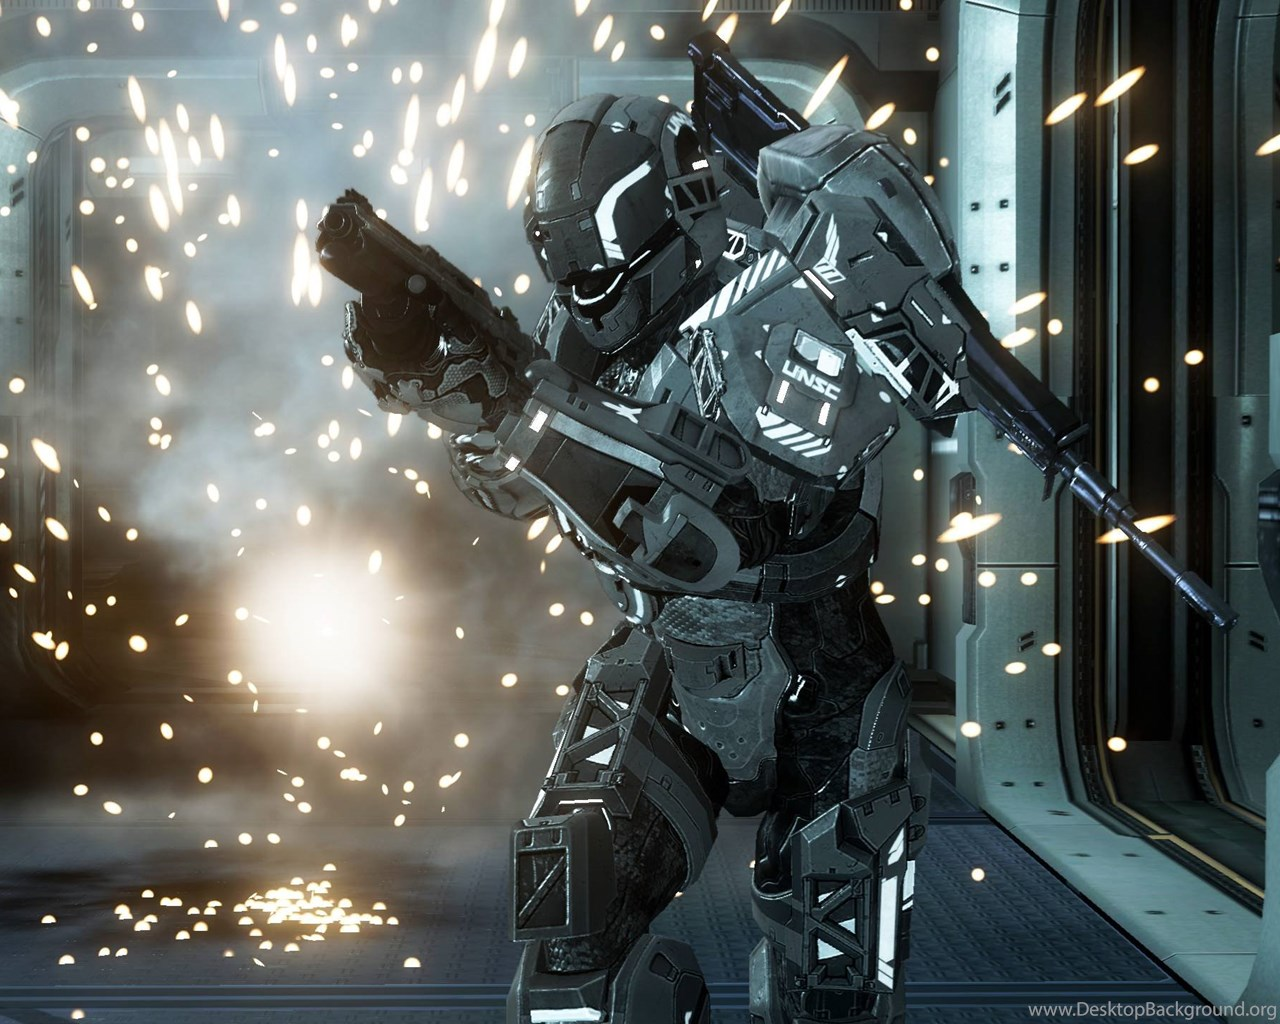 Halo 4 backgrounds hd wallpapers cave desktop background widescreen voltagebd Image collections